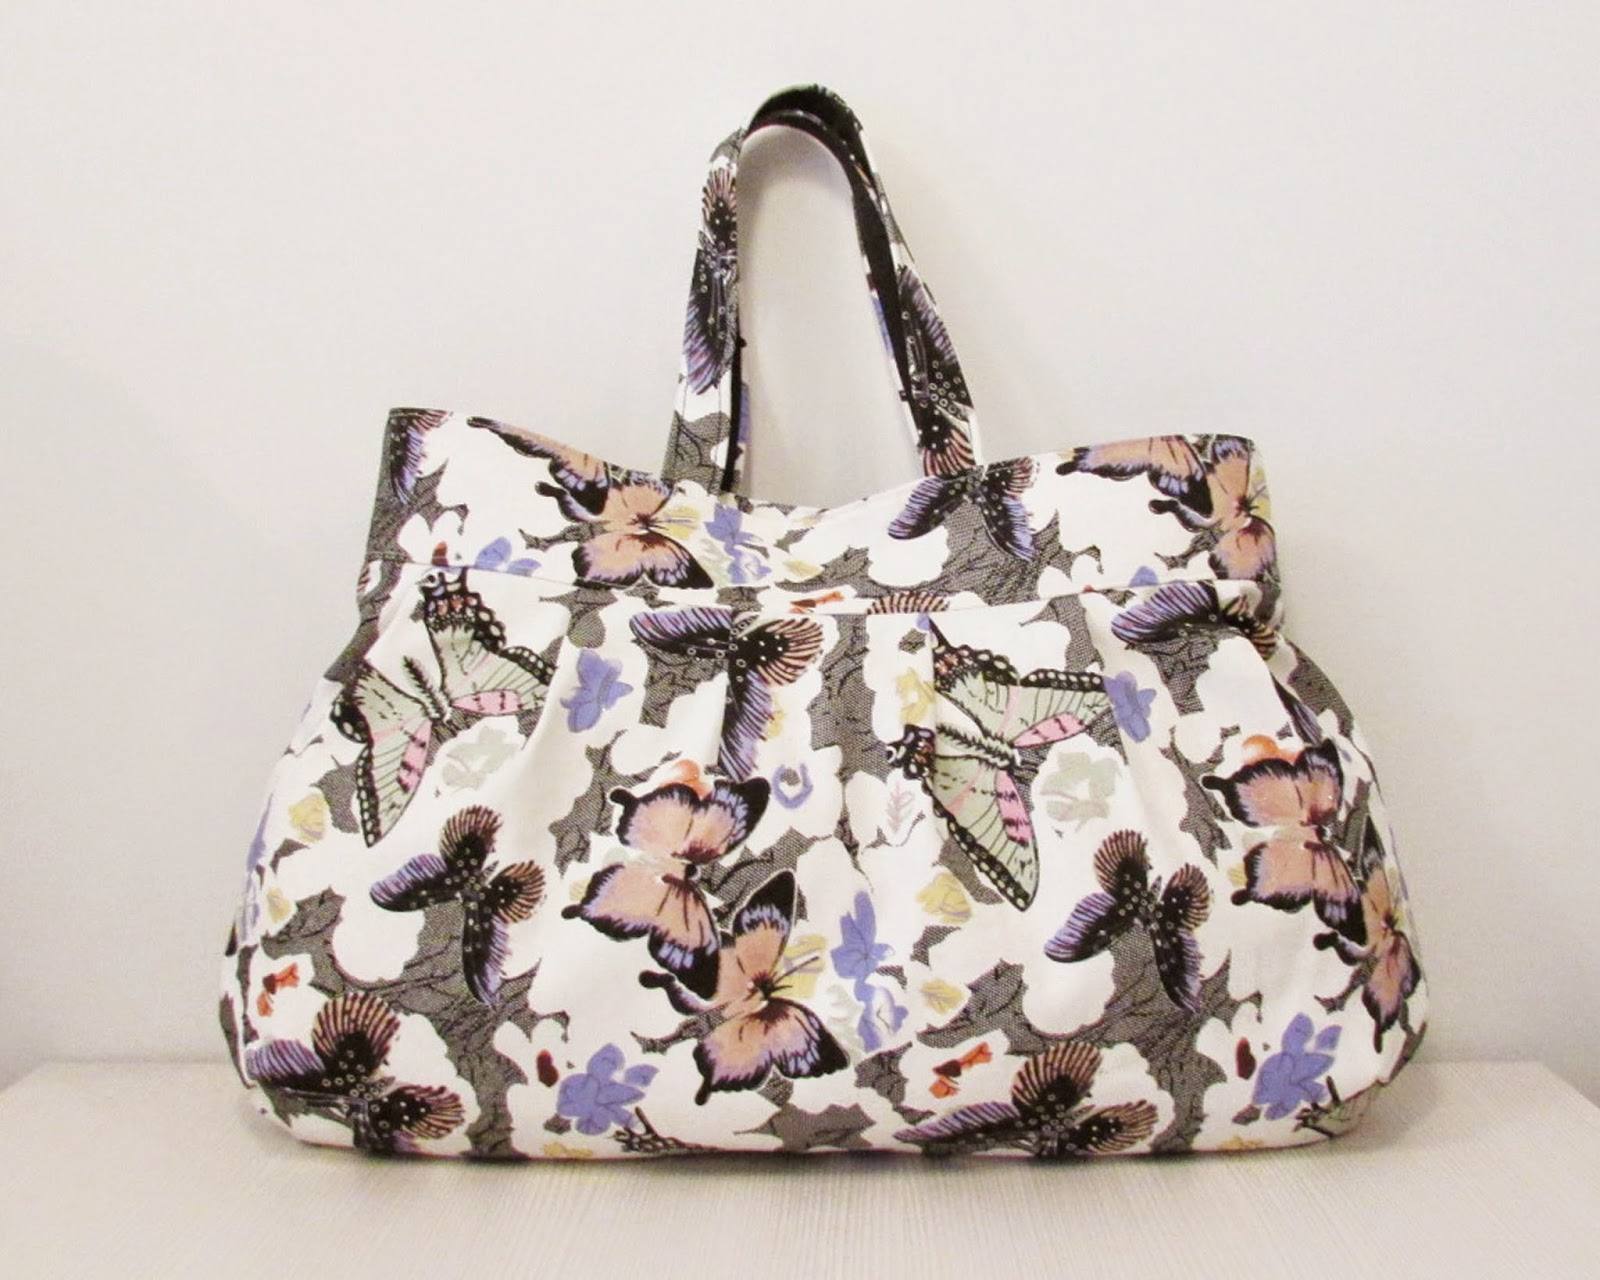 https://www.etsy.com/listing/180553310/butterfly-printed-canvas-large-bag?ref=listing-1